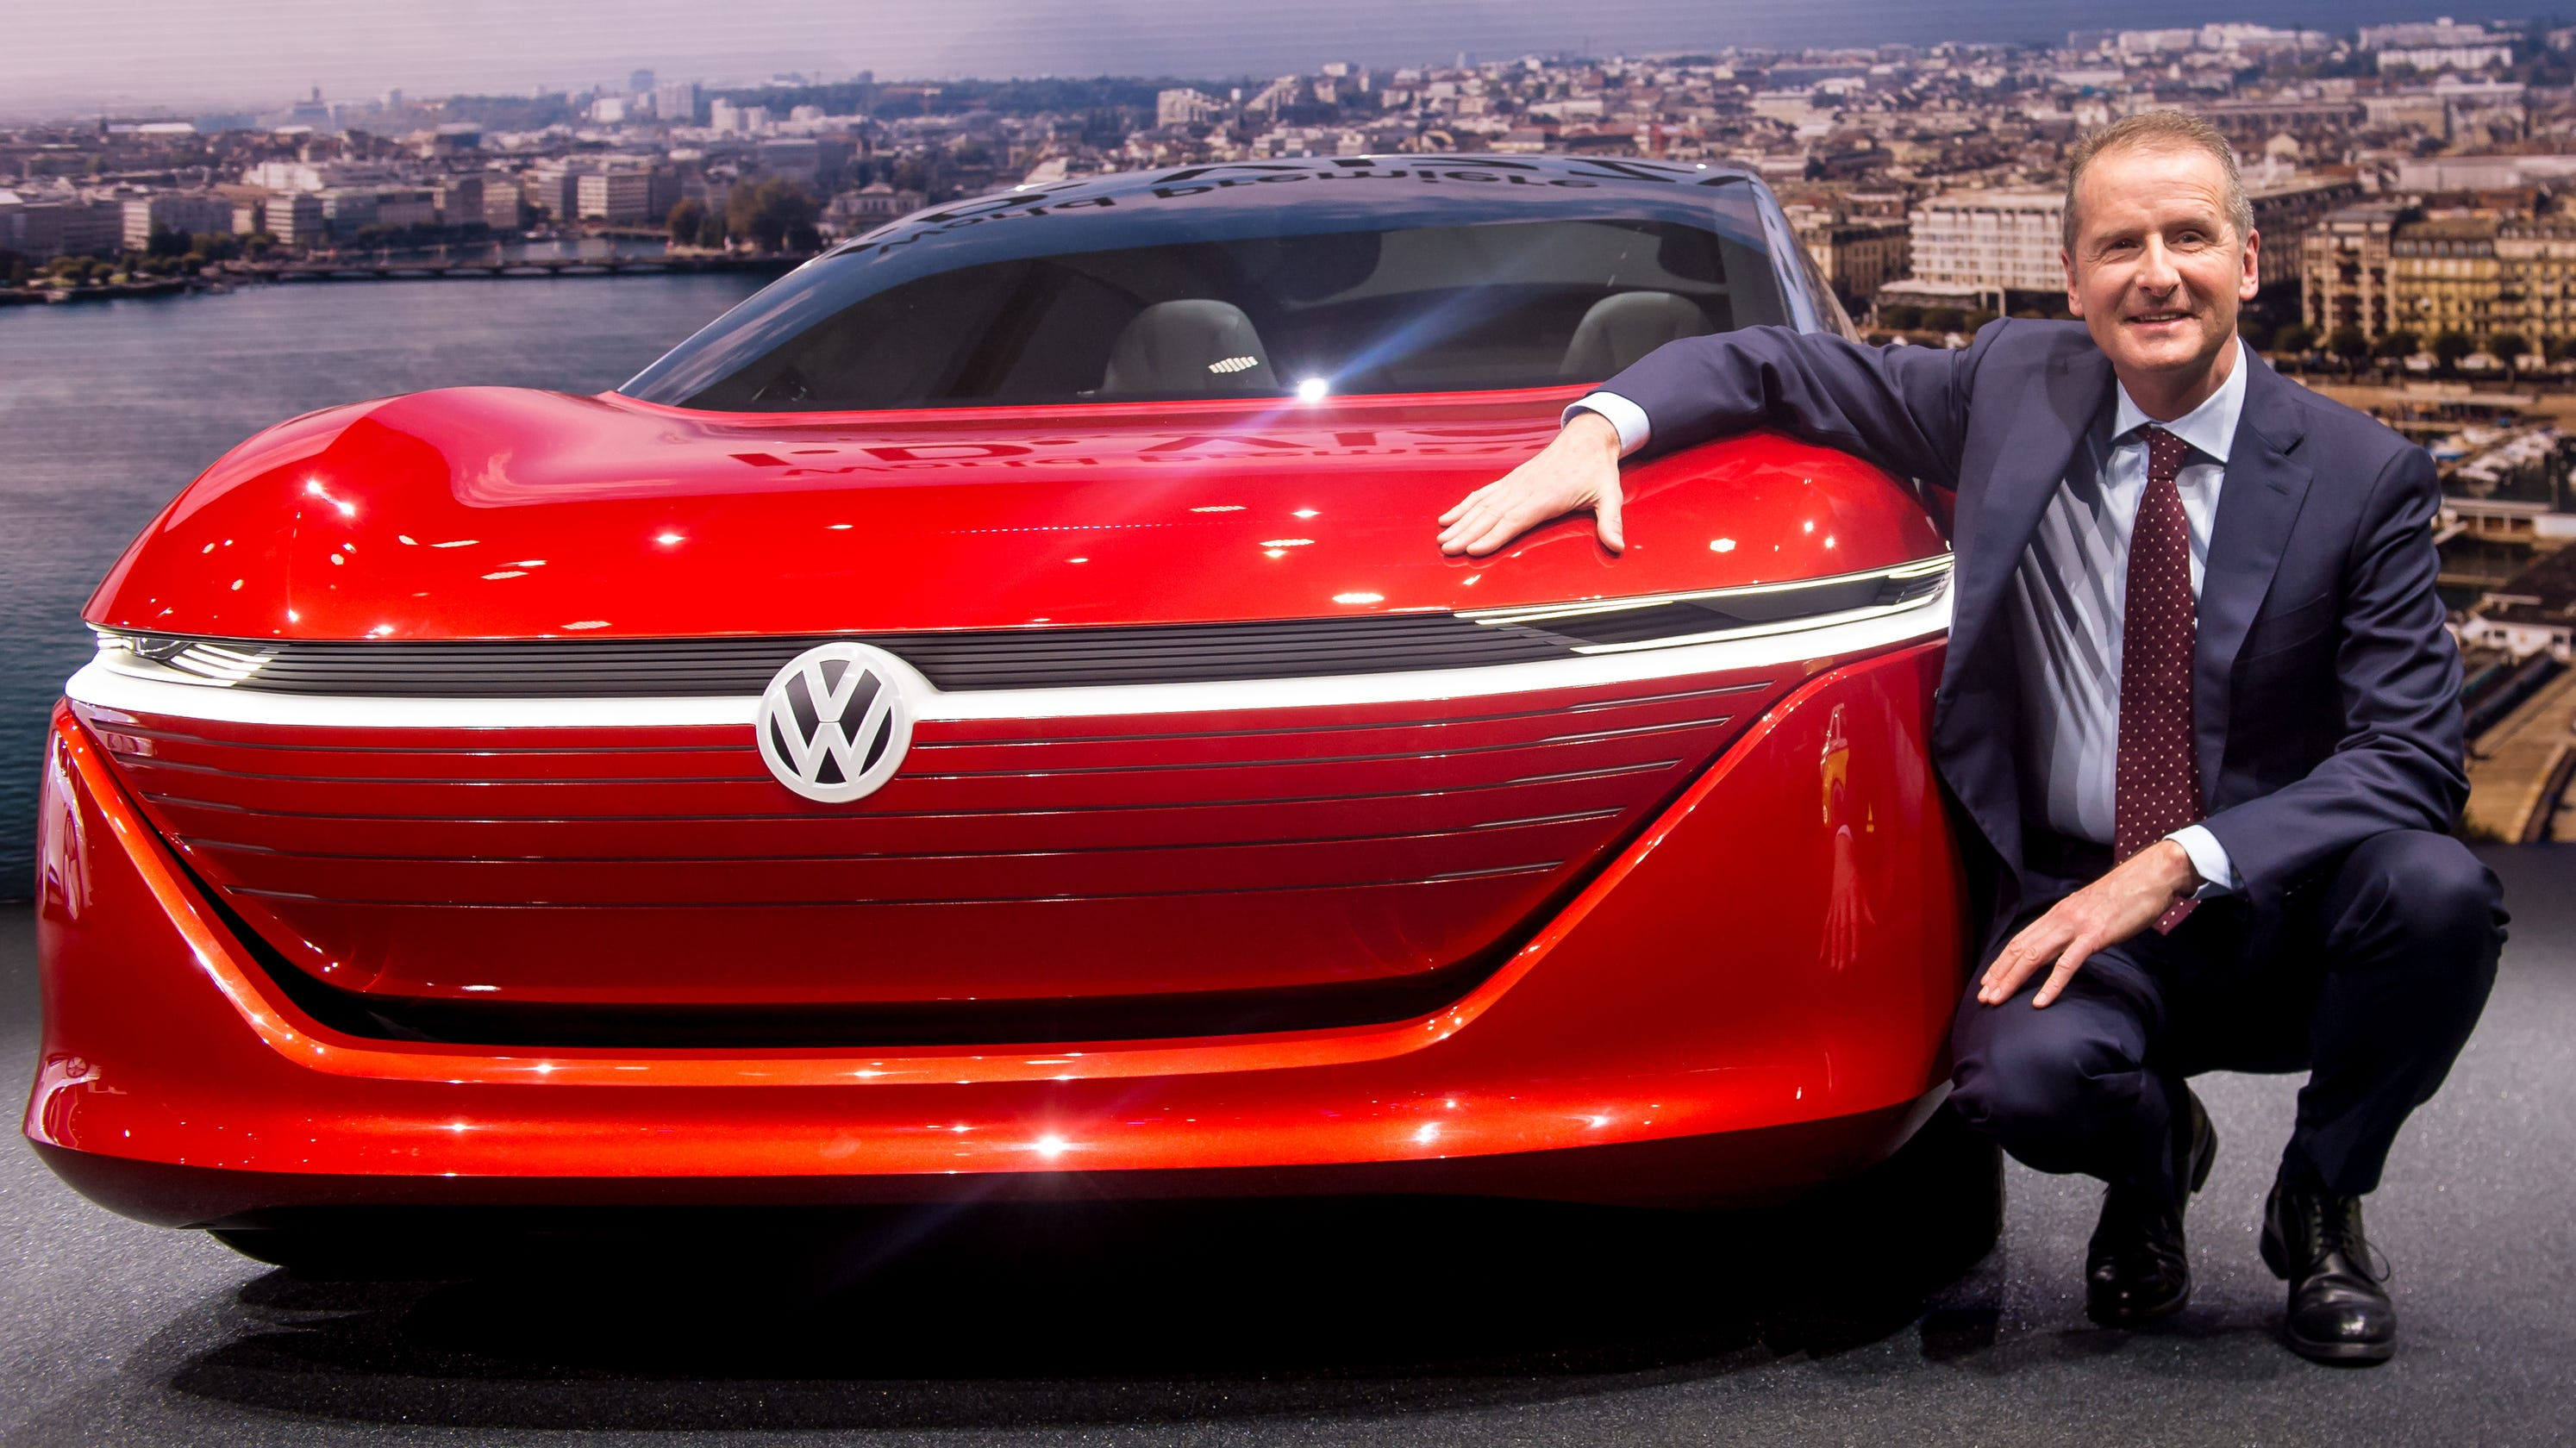 VW's CEO says Germany would be better home for Tesla car ...